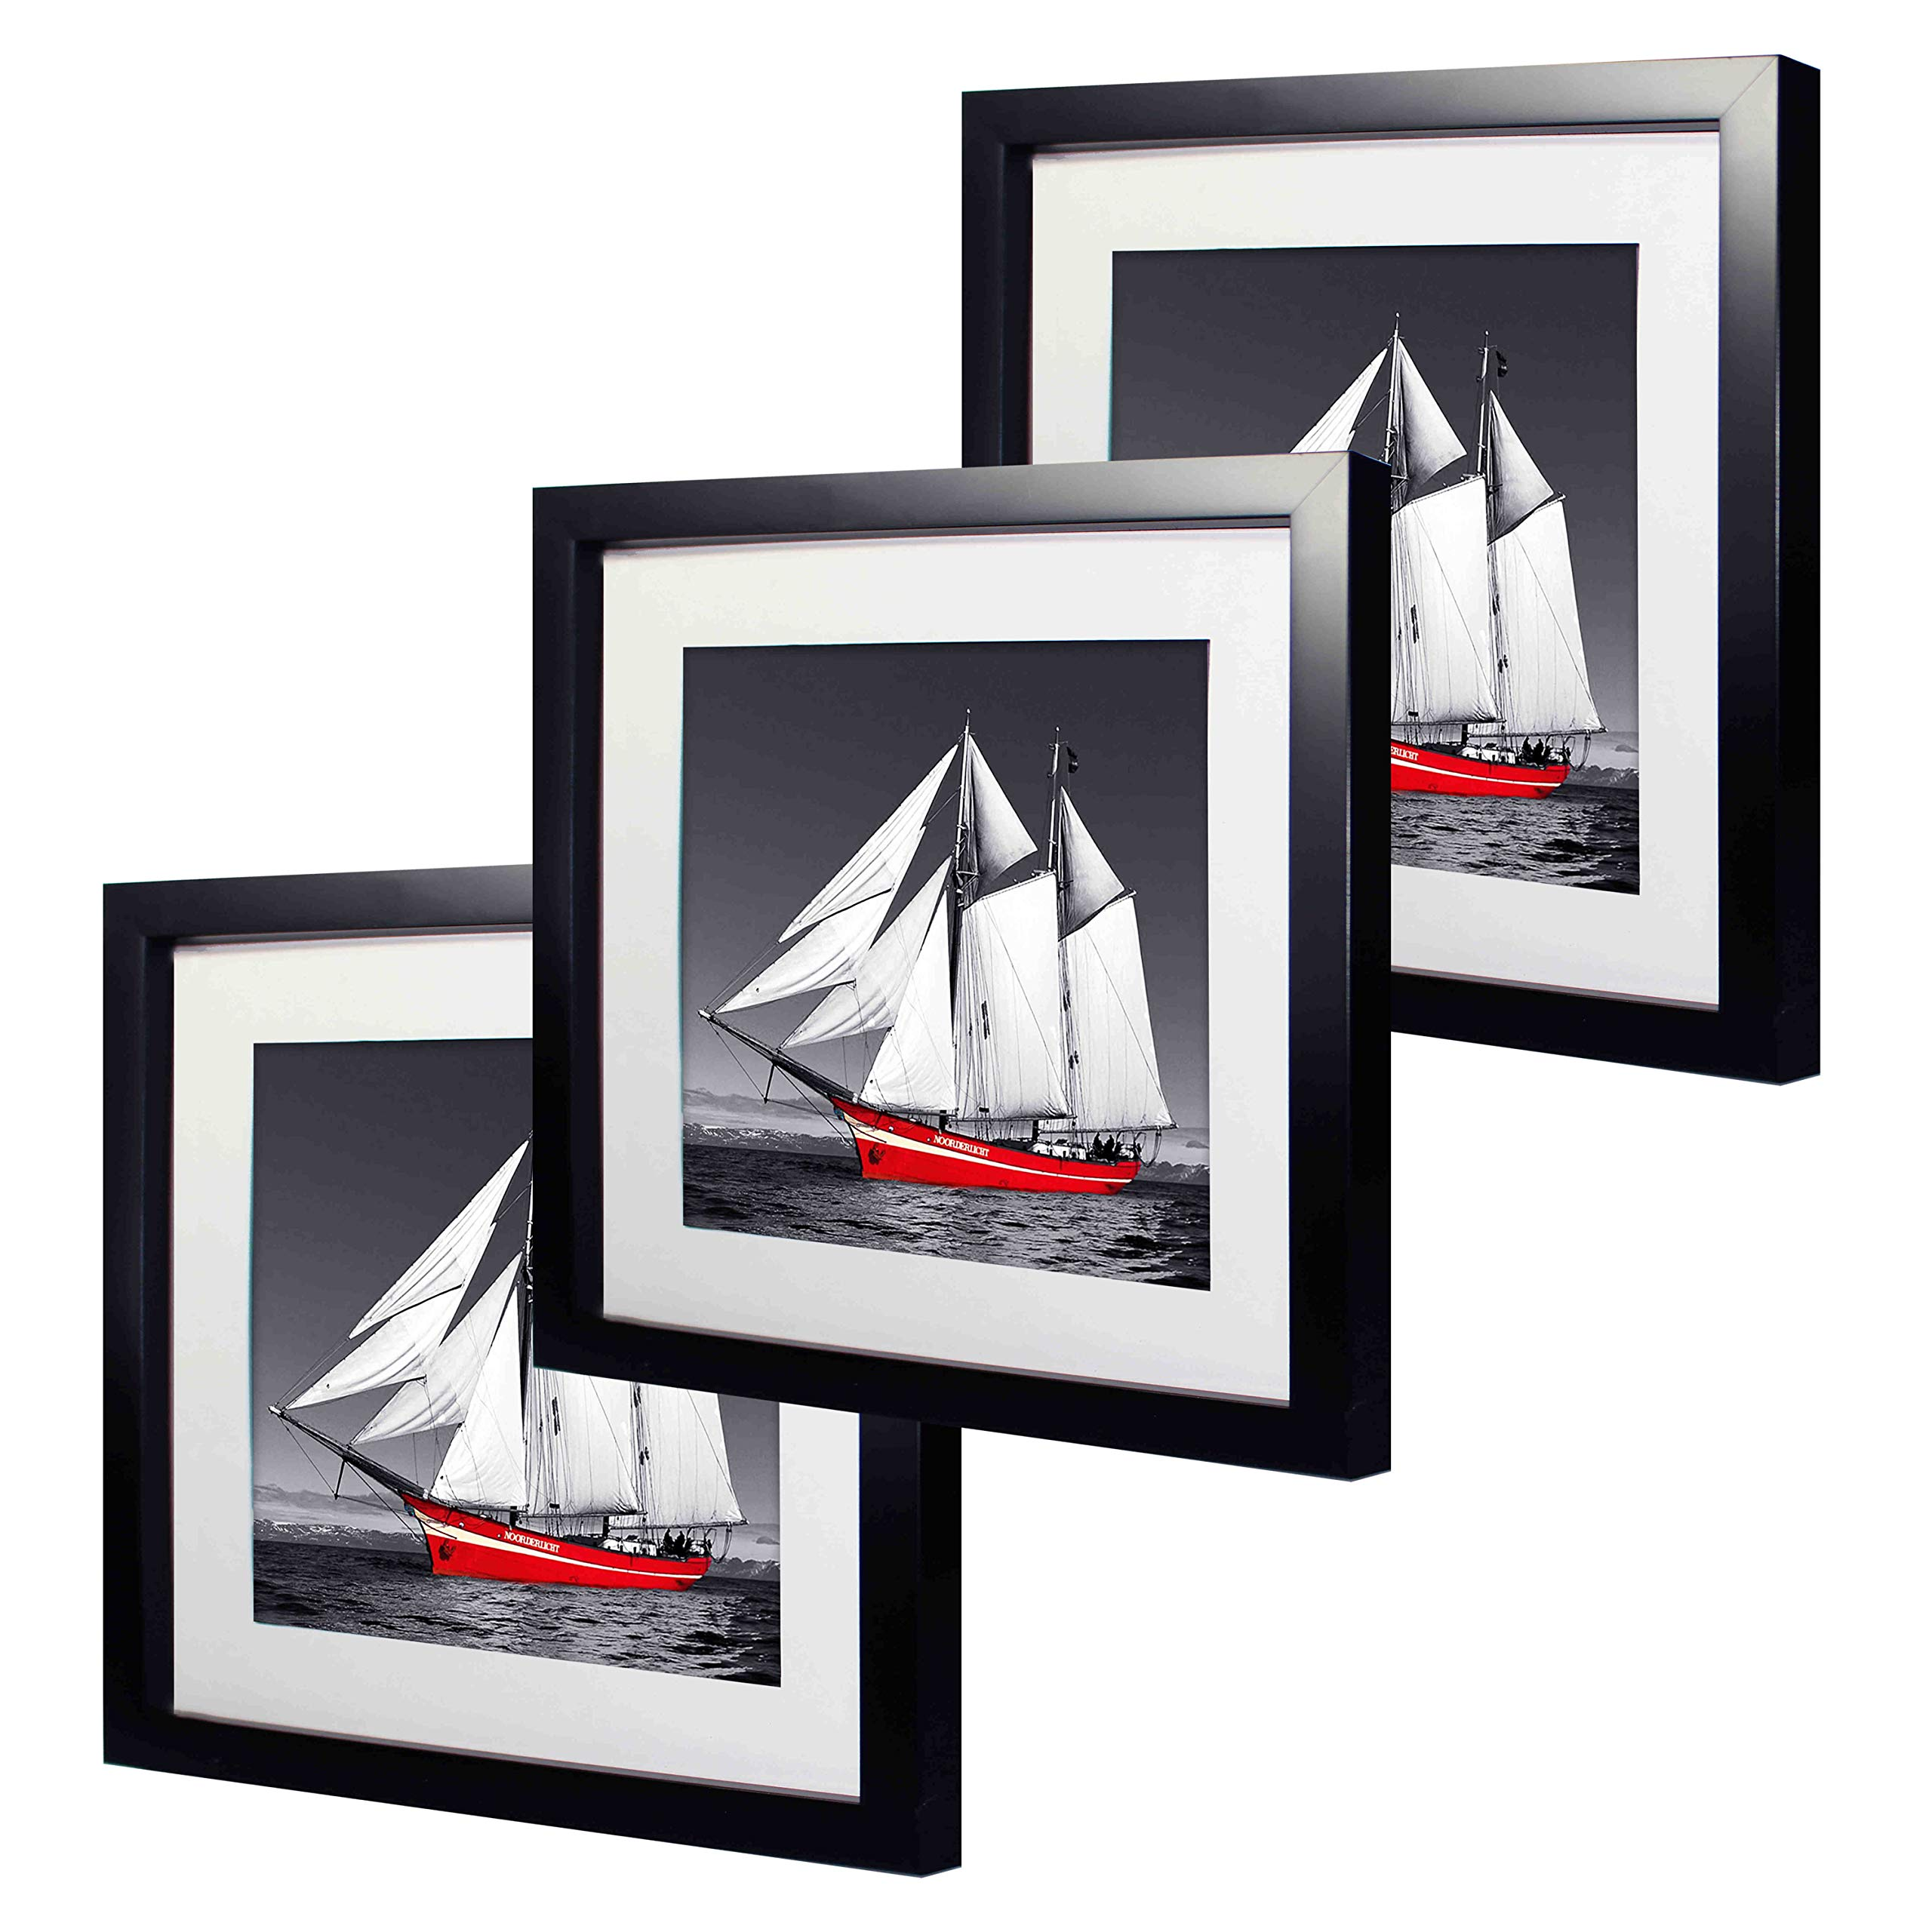 11 x 11 inch Black Picture Frame Made to Display Pictures 8x8 with Mat or 11x11 without Mat 3 Pack One Set for Wall & Tabletop Chirstmas Holiday Home Gift by Natural art